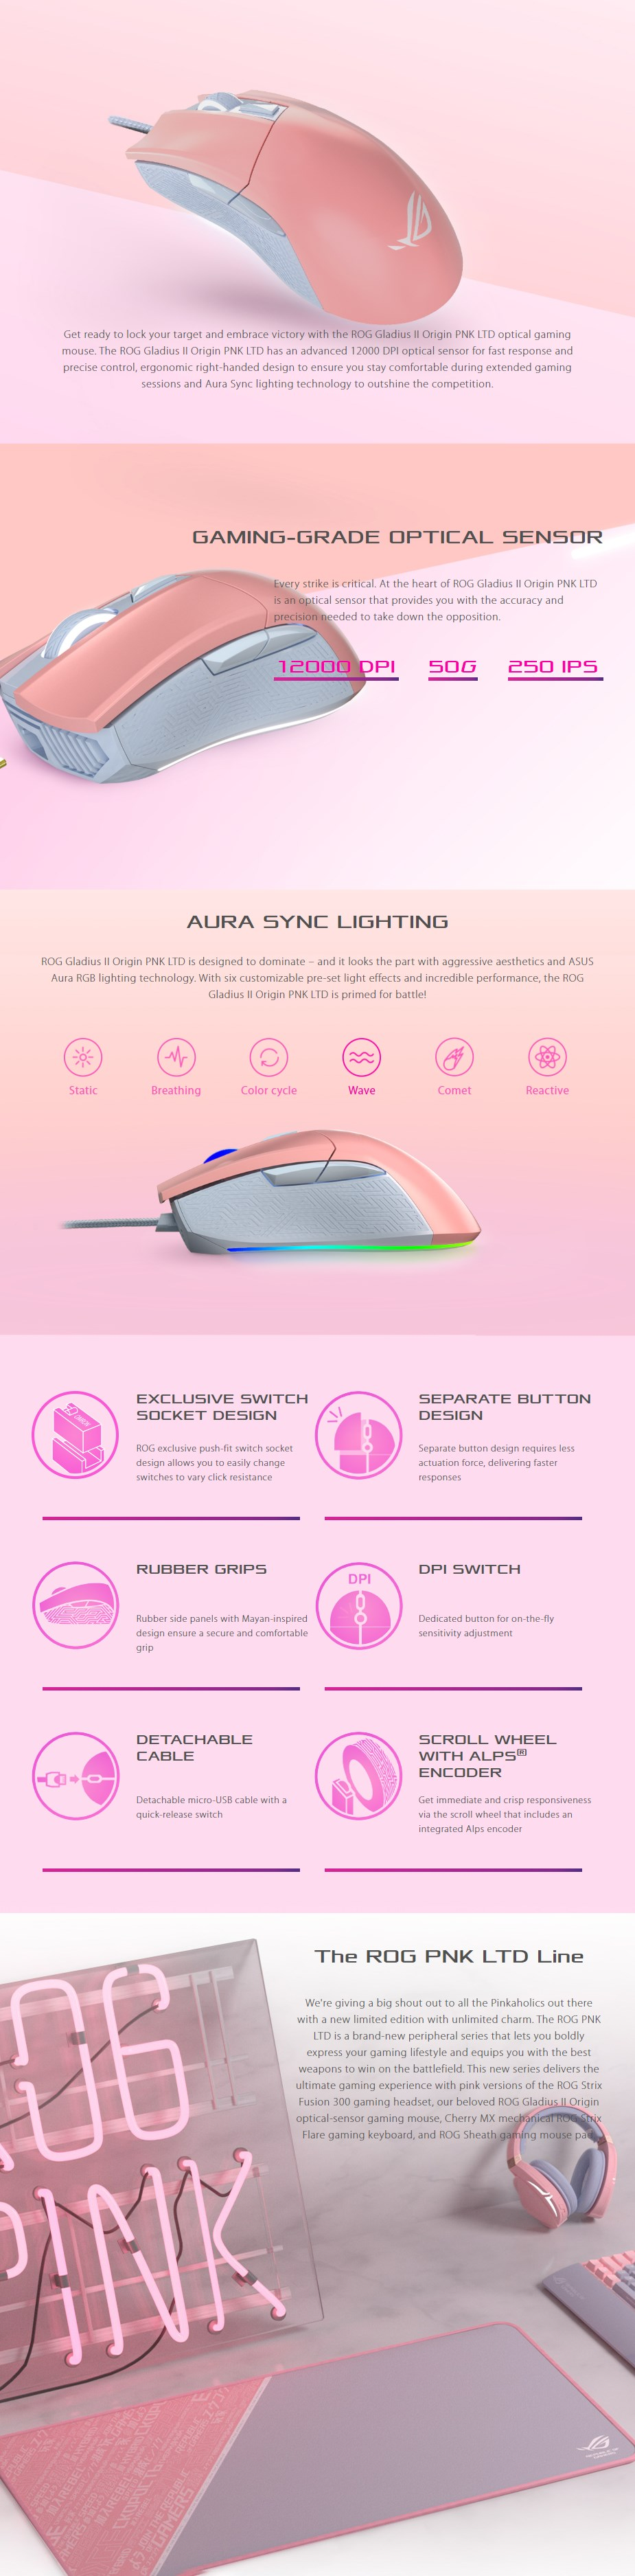 asus-rog-gladius-ii-rgb-optical-gaaming-mouse-pink-edition-ac28619-6.jpg